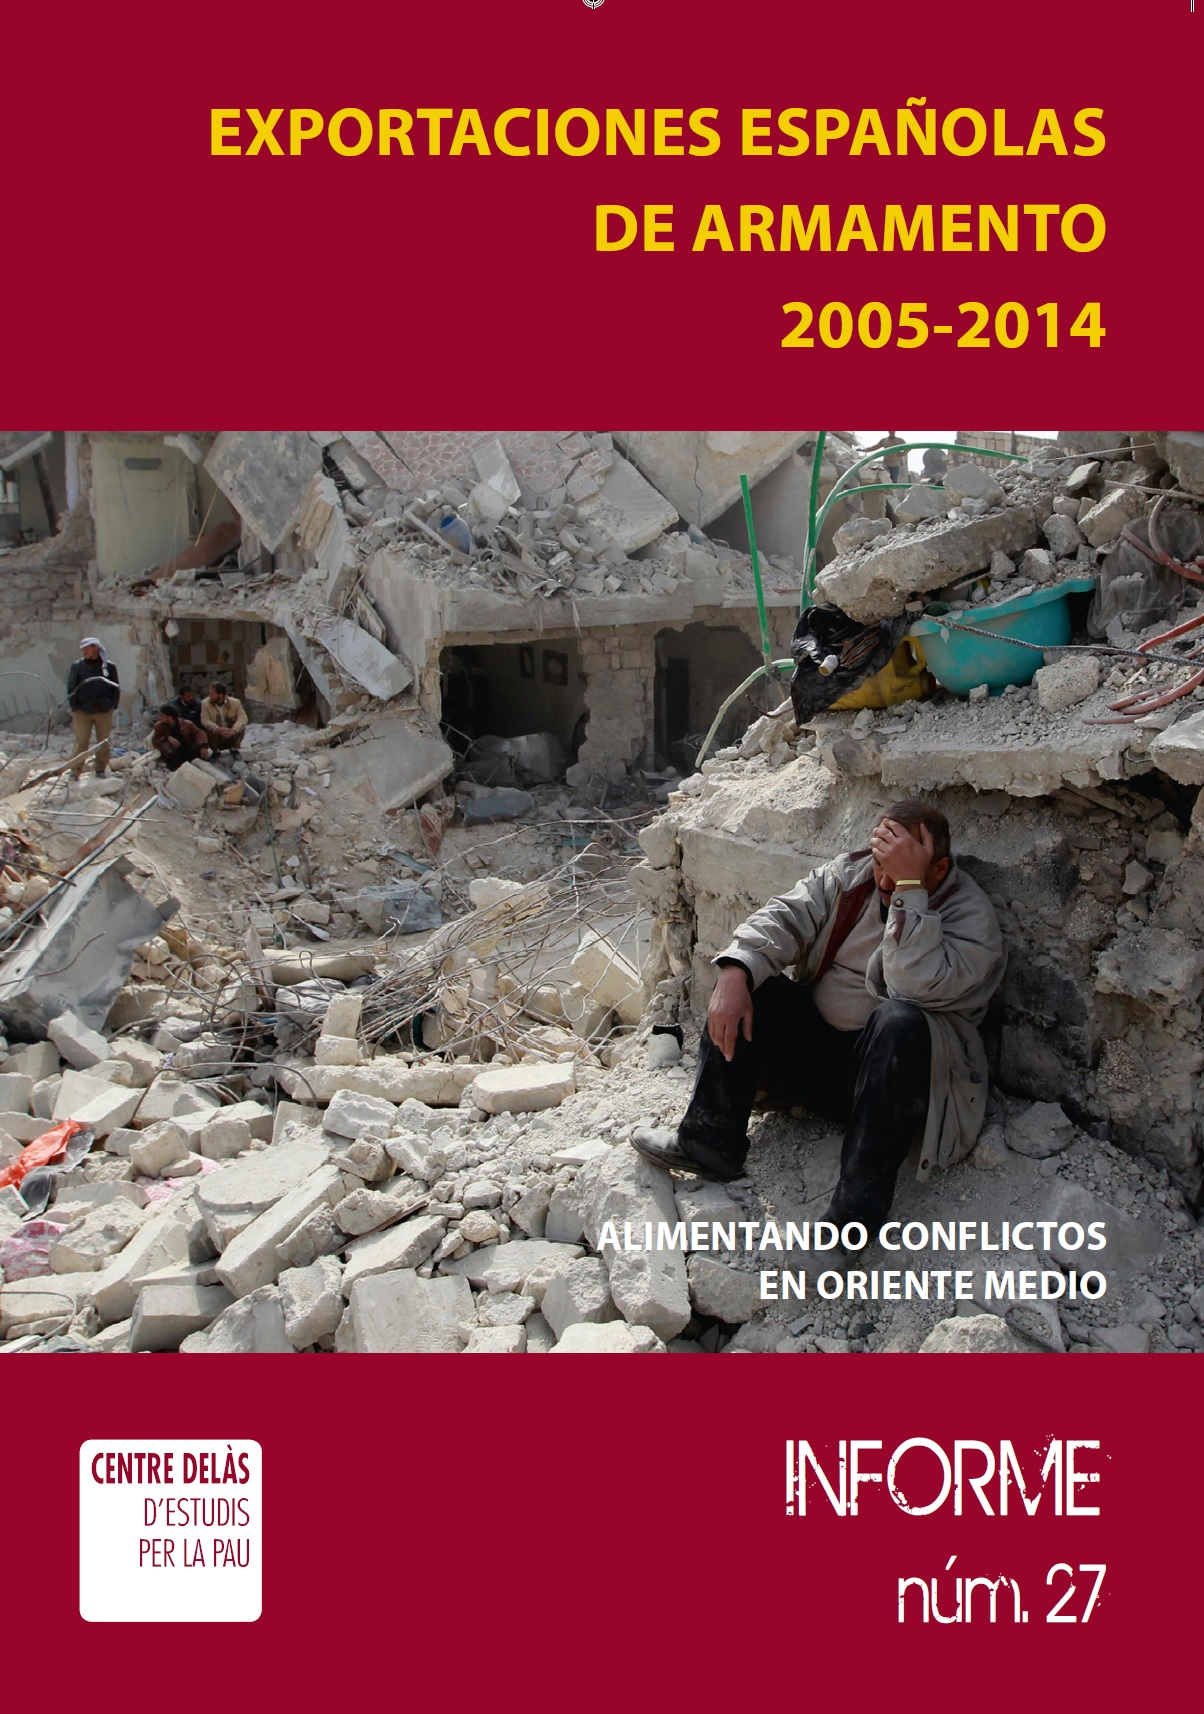 Report 27: Spanish arms exports 2005-2014. Fueling conflicts in the Middle East